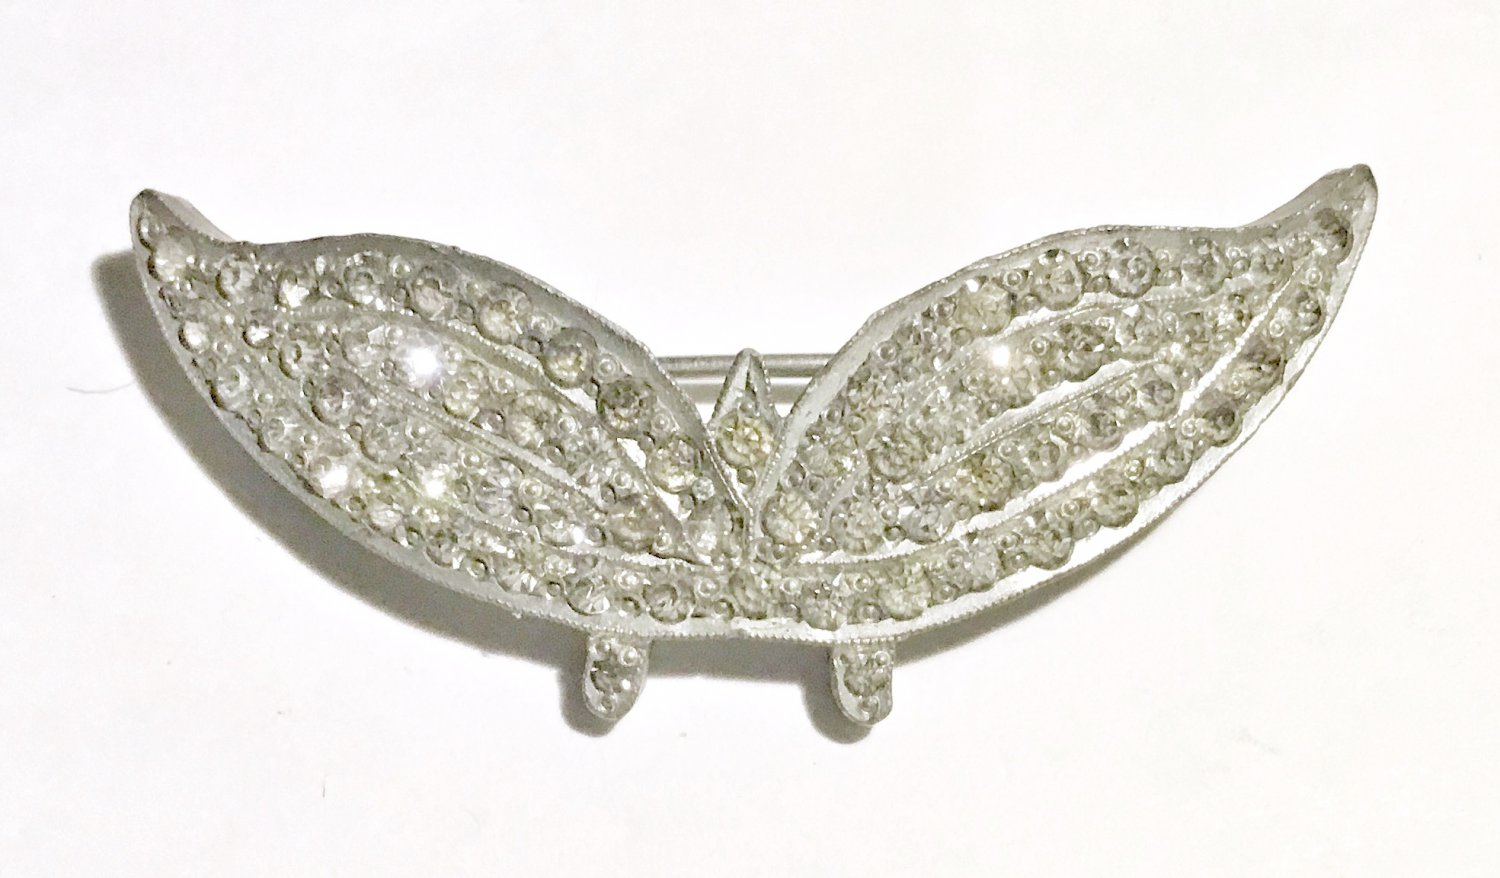 1920s Rhinestone Art Deco Bird Brooch - Free USA Shipping